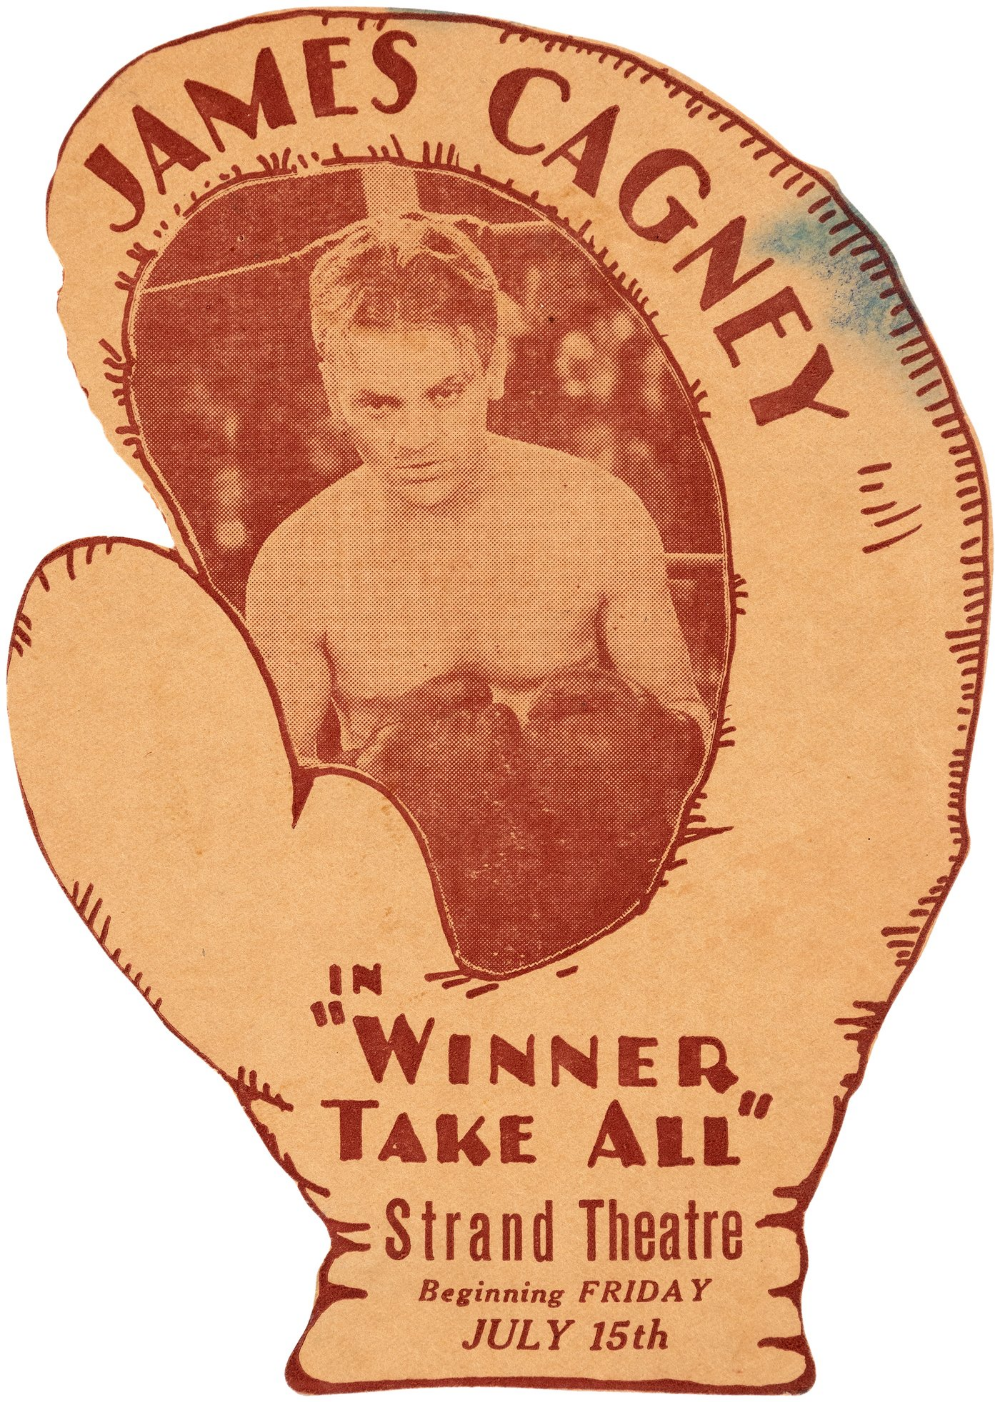 """WINNER TAKE ALL"" (1932) JAMES CAGNEY James cagney"